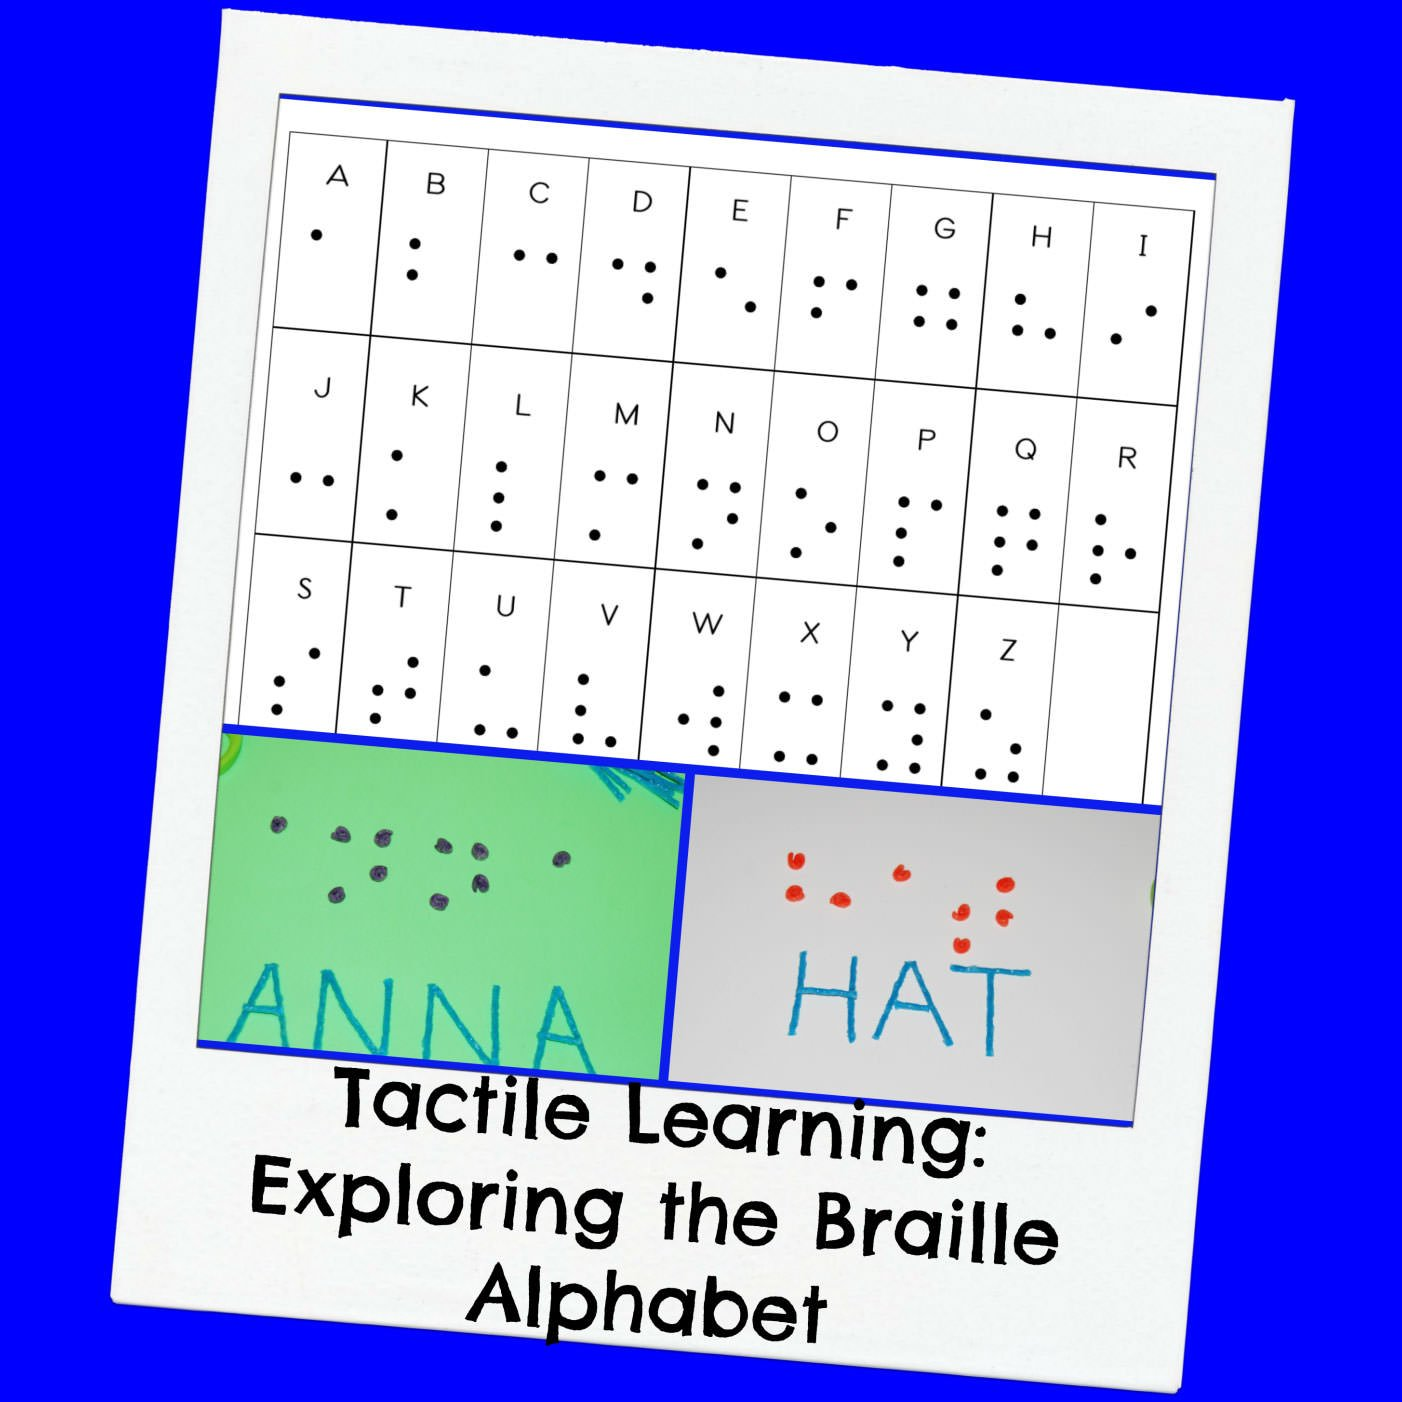 Tactile Learning: Creating the Braille Alphabet with Kids | Wikki Stix